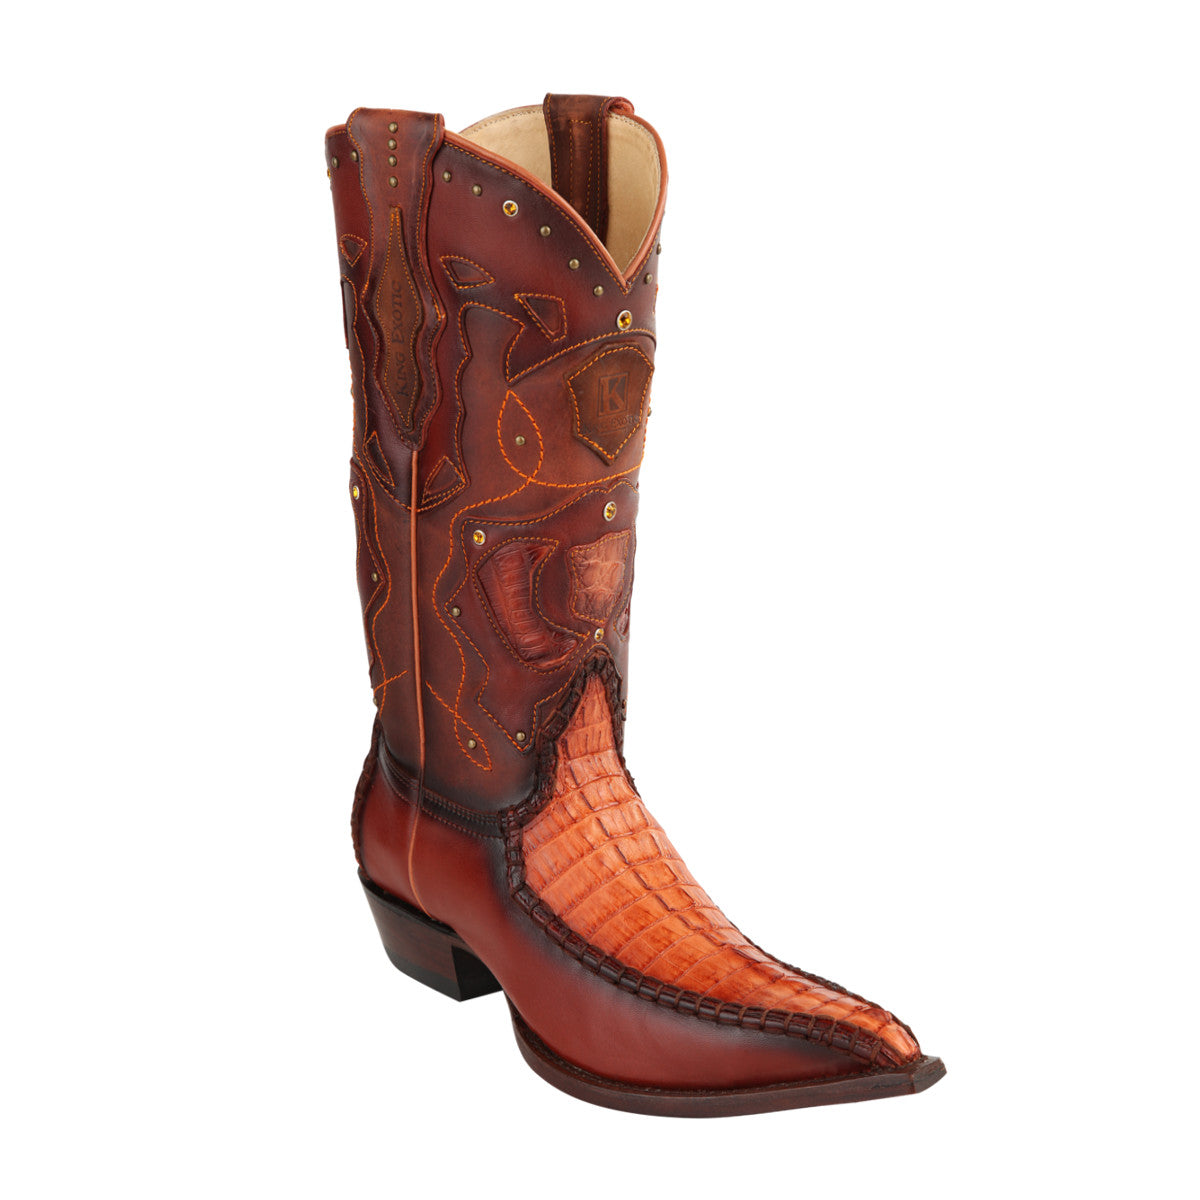 King Exotic H95 3x Toe Caiman Tail Stitched - Cognac